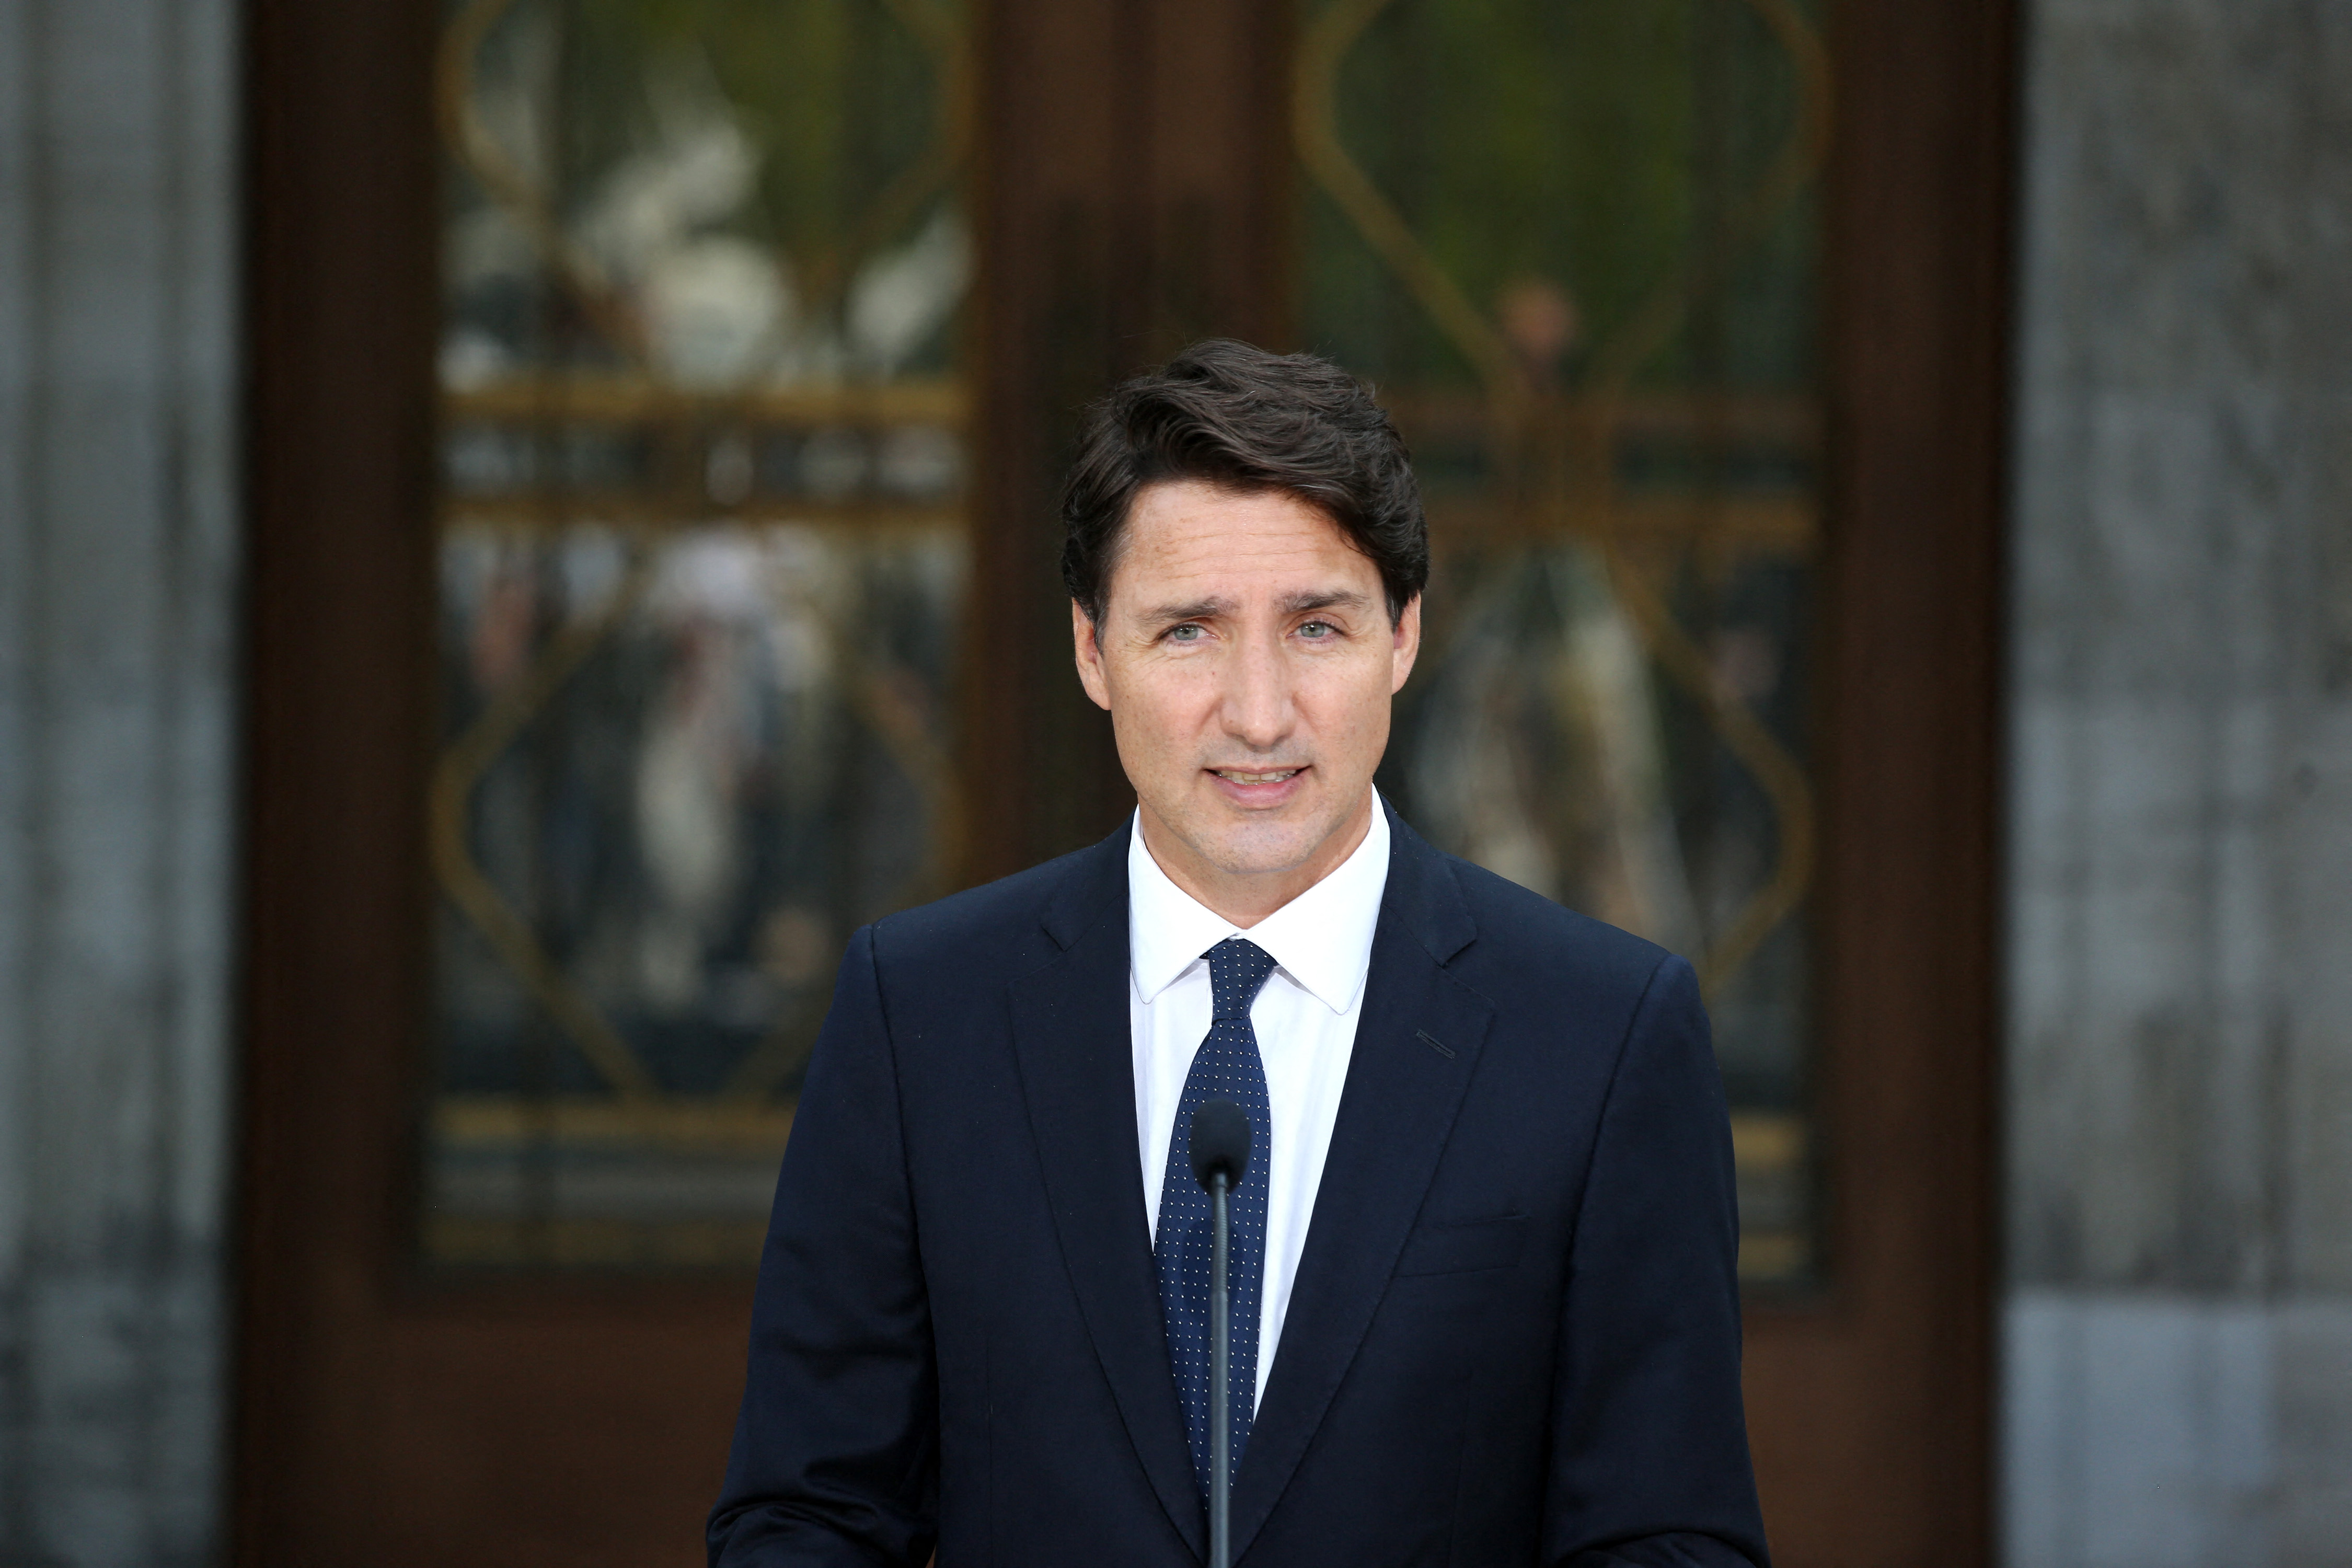 Canada's Prime Minister Justin Trudeau speaks during a news conference at Rideau Hall after asking Governor General Mary Simon to dissolve Parliament in Ottawa, Canada.(Photo by DAVE CHAN/AFP via Getty Images)